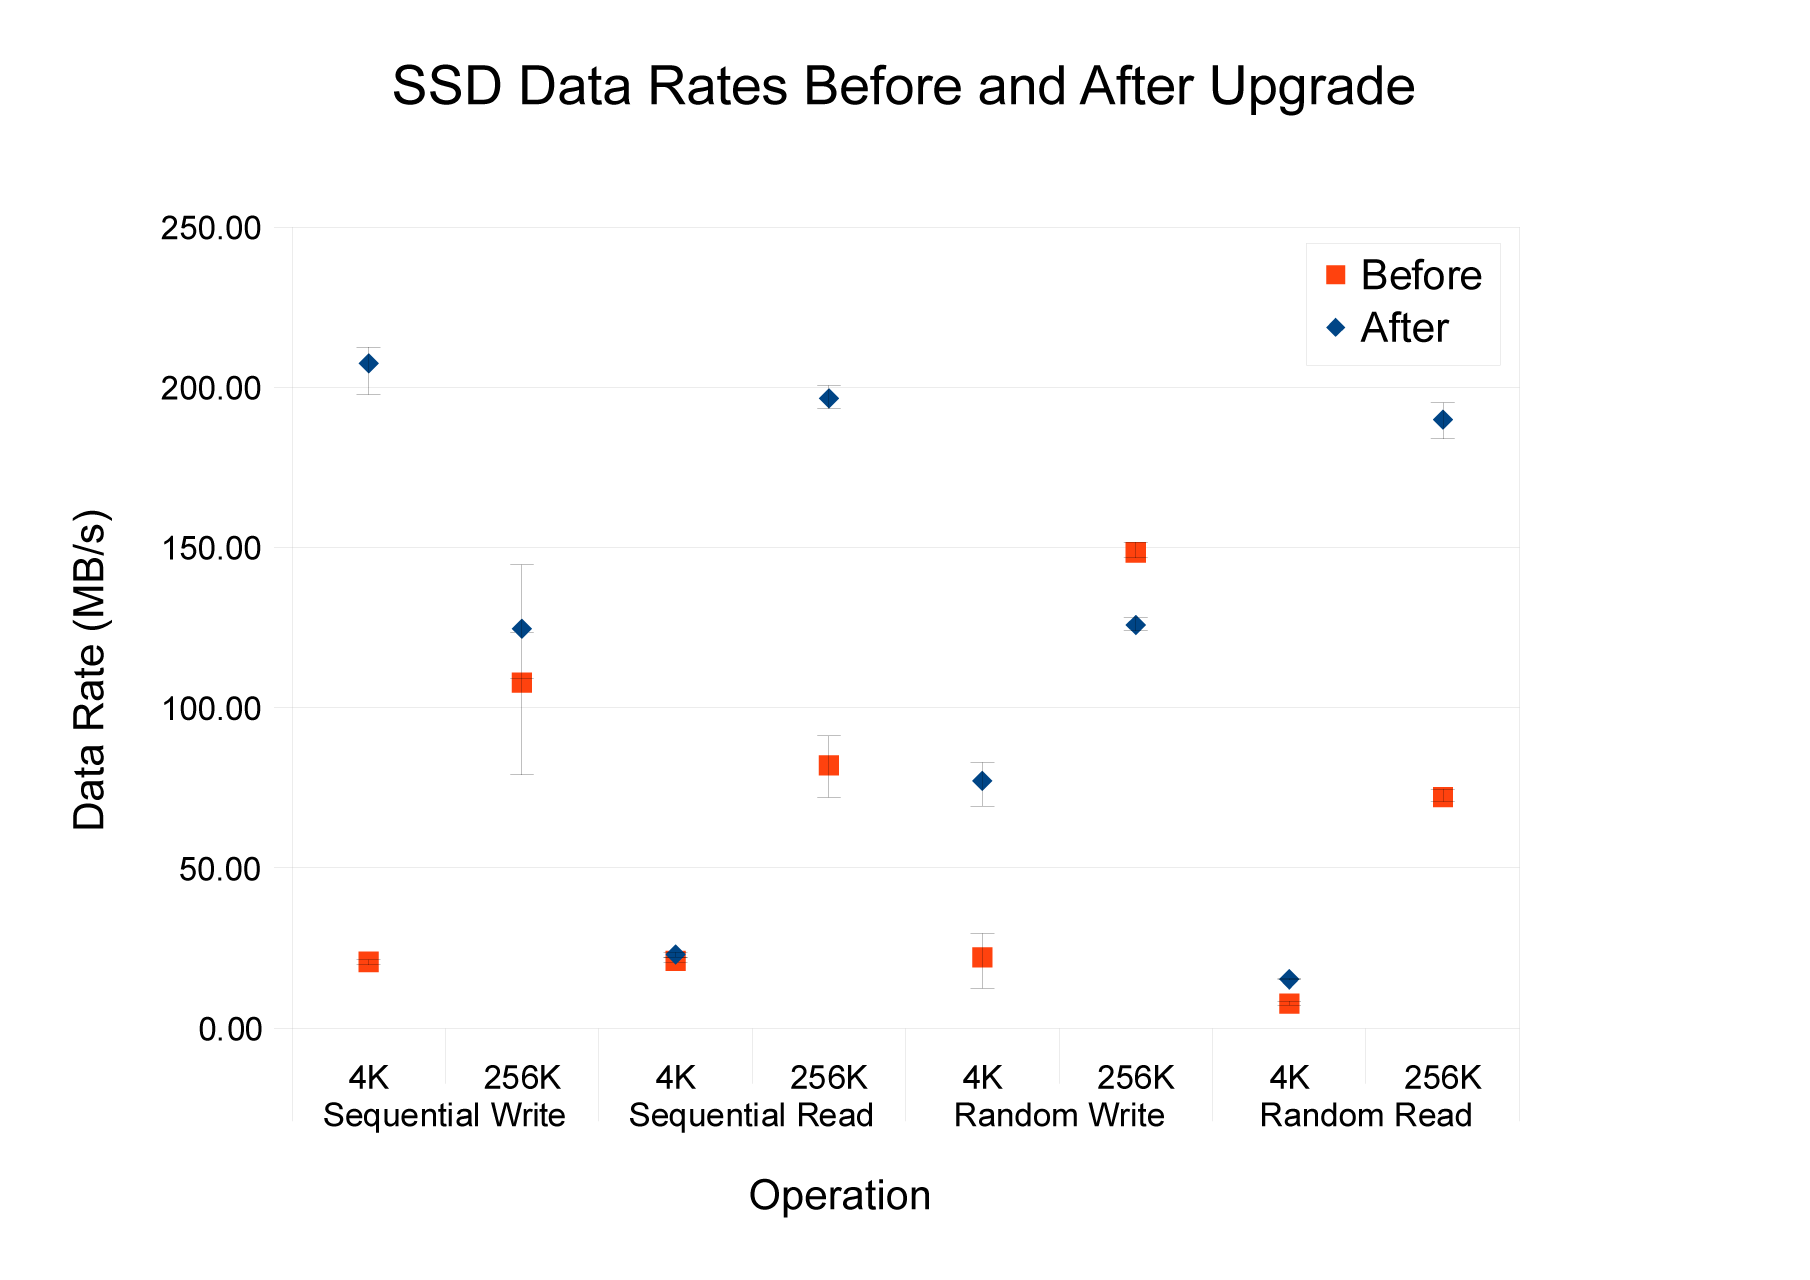 SSD Performace Before and After Upgrade